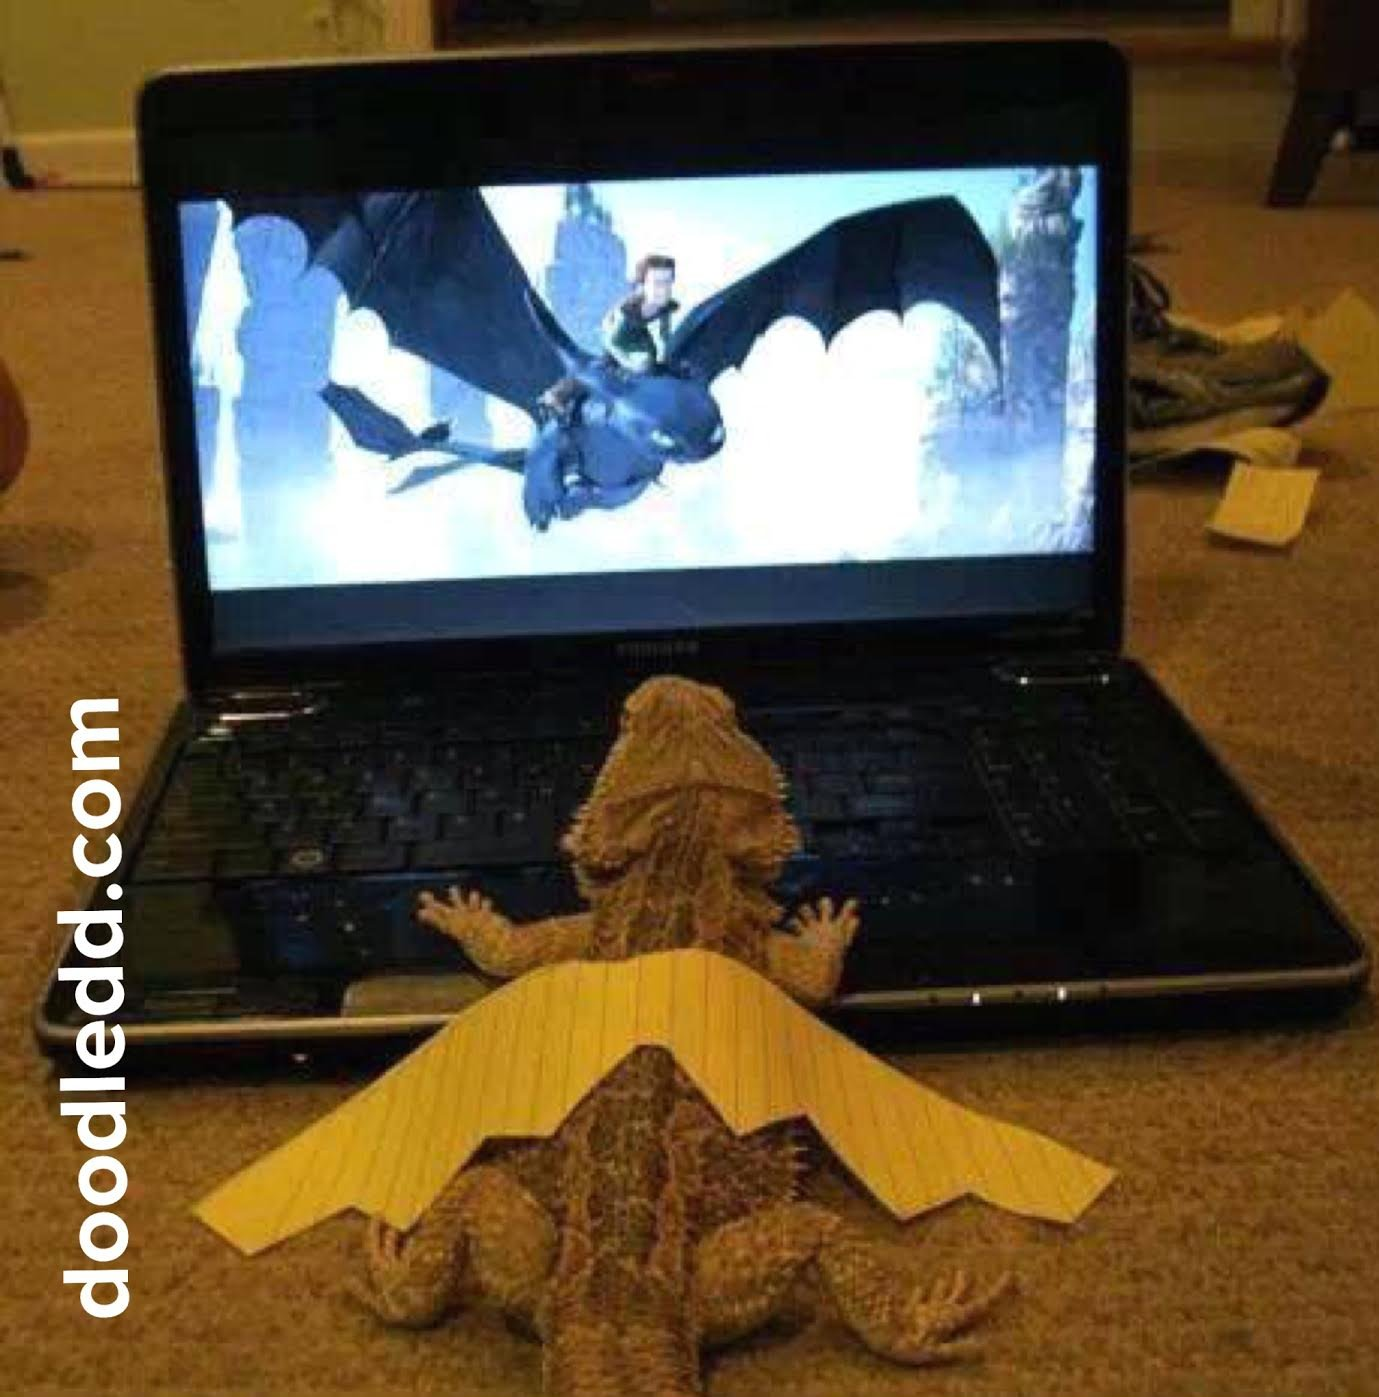 Baby Dragon watching a DragonCam on a laptop